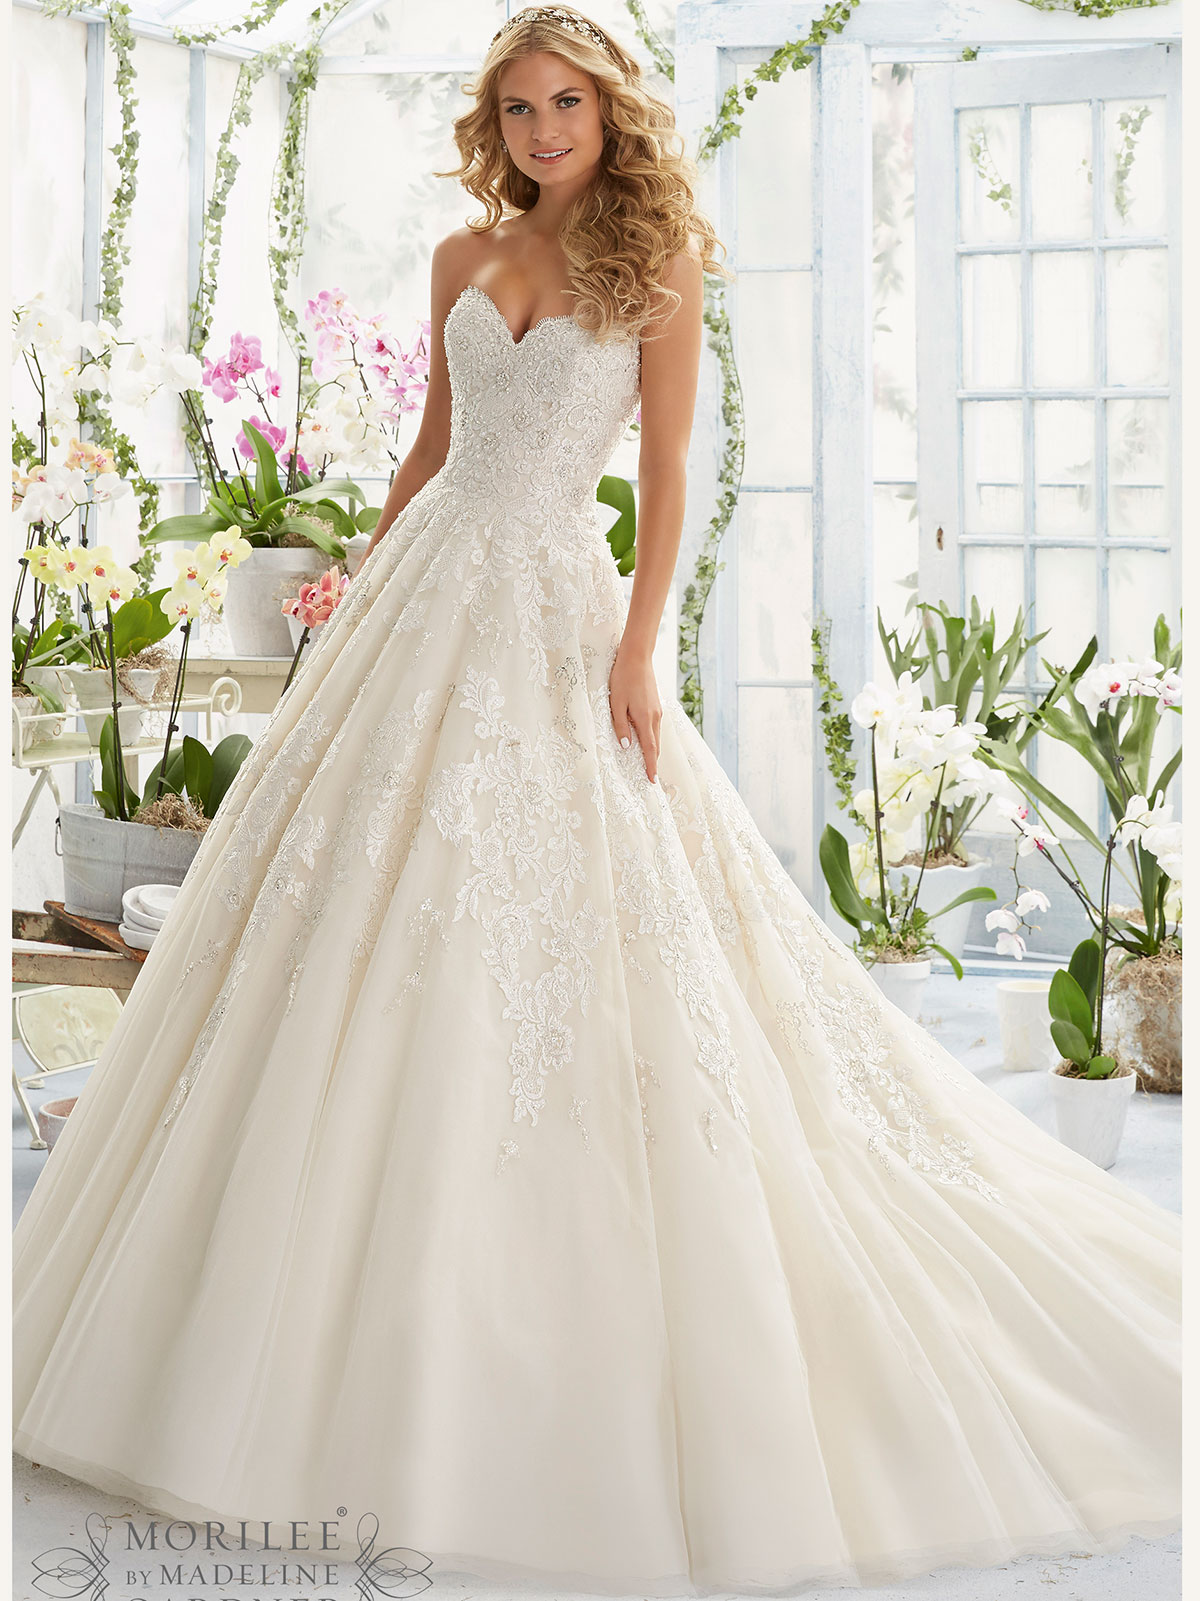 Mori lee 2808 sweetheart ball gown bridal dress for Beading for wedding dress